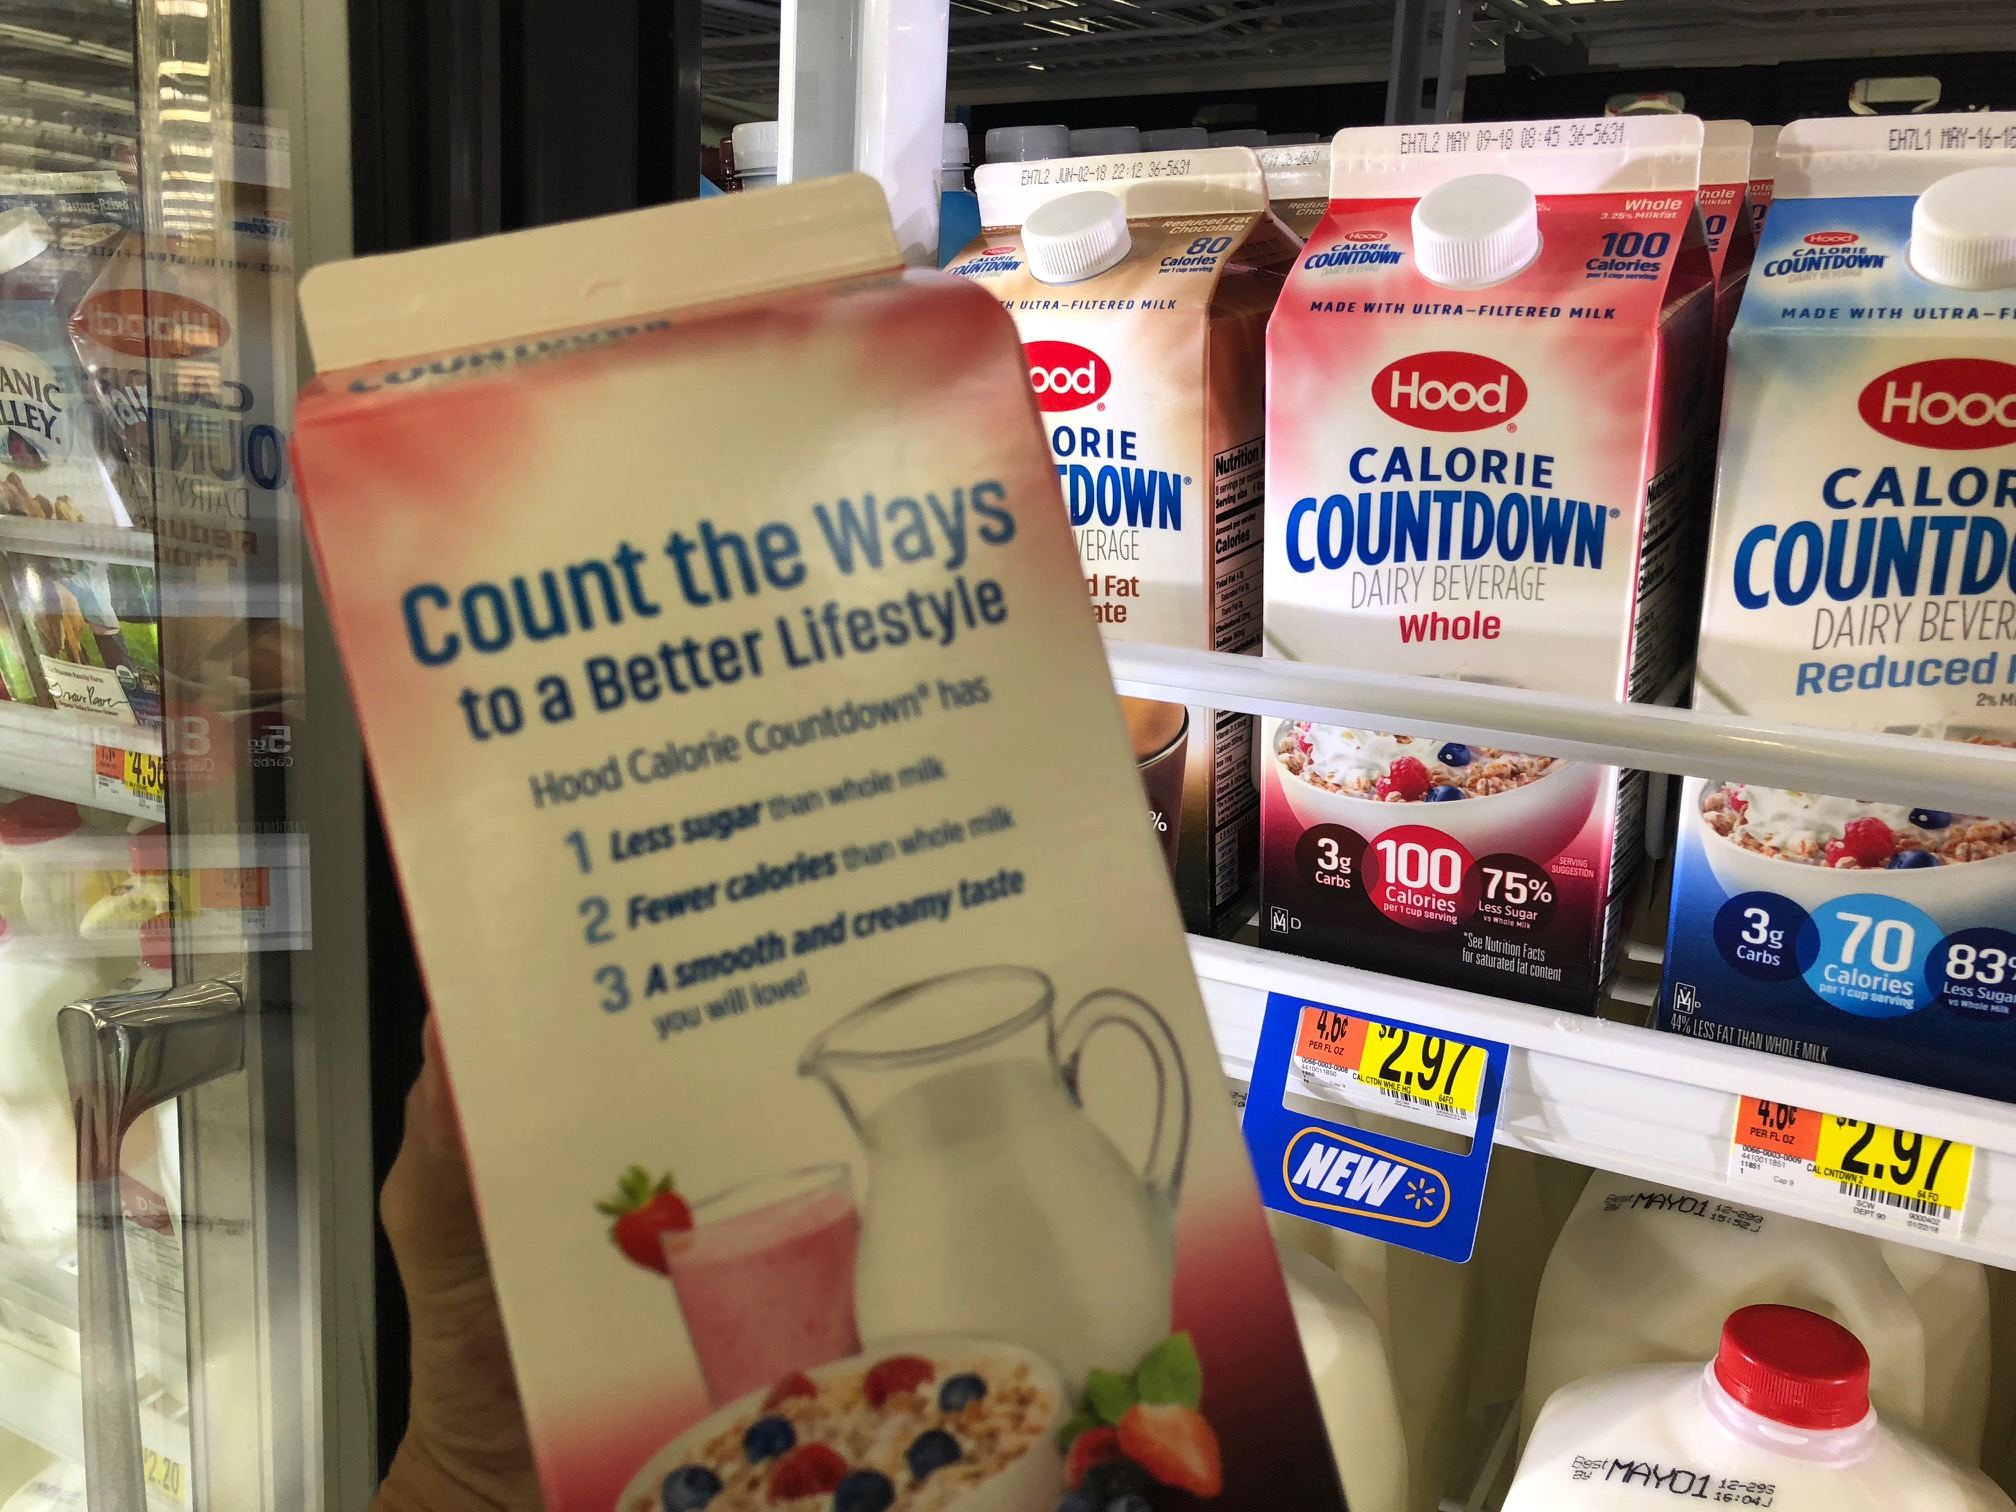 Milk substitute | Dairy beverage to replace milk with | Hood Calorie Countdown | Acupful.com | Family Lifestyle blogger Mandy Carter| healthy milk for kids | Hood calorie countdown coupon